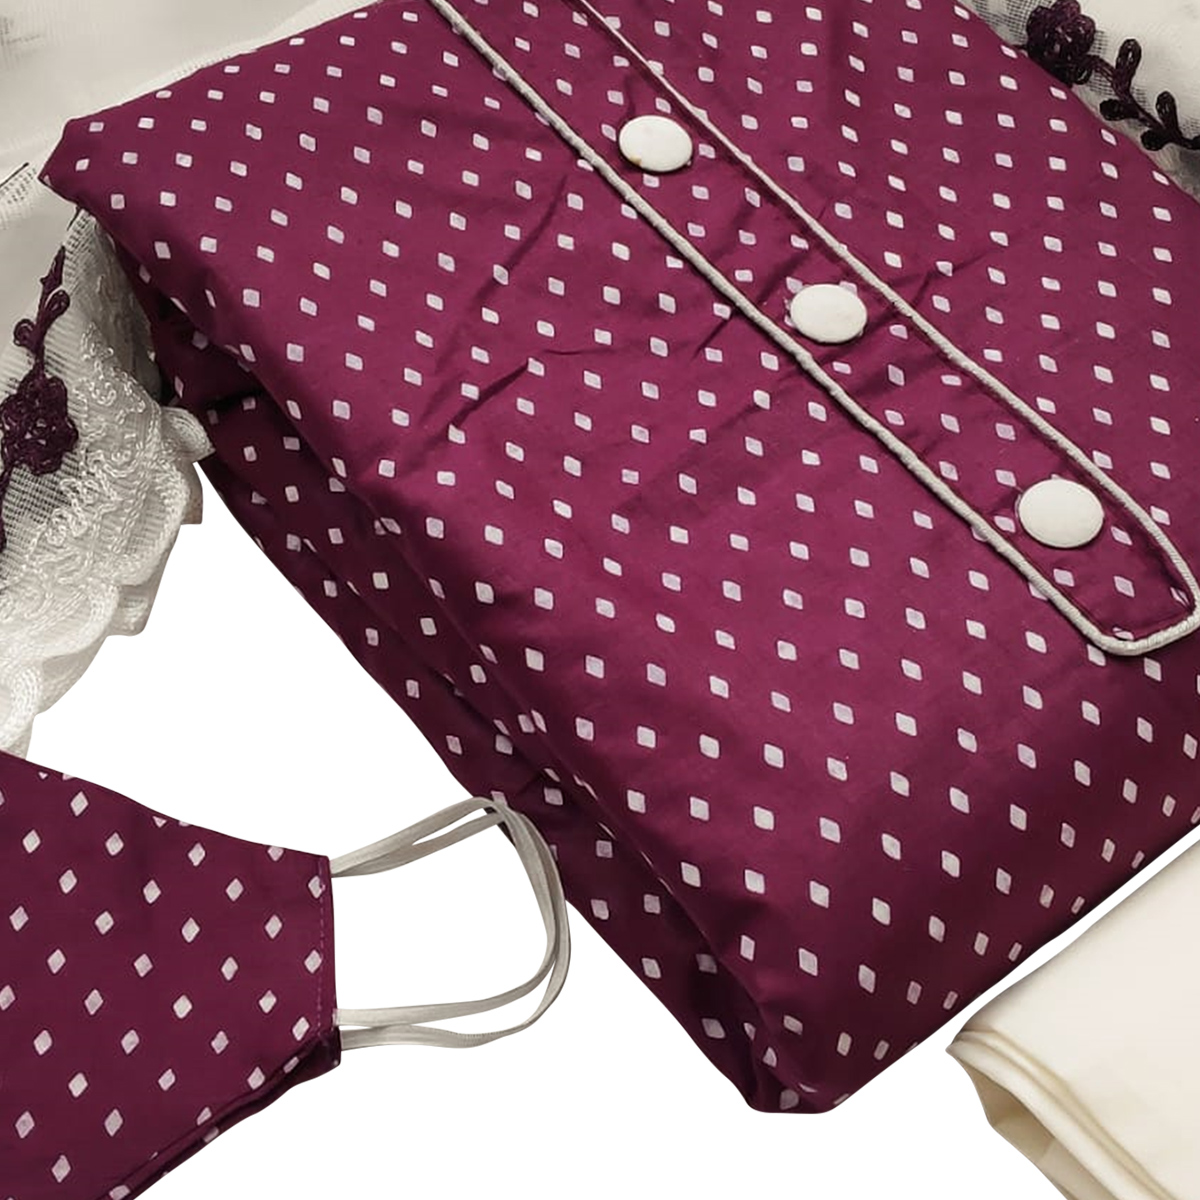 Charming Wine Colored Casual Wear Printed Cotton Dress Material